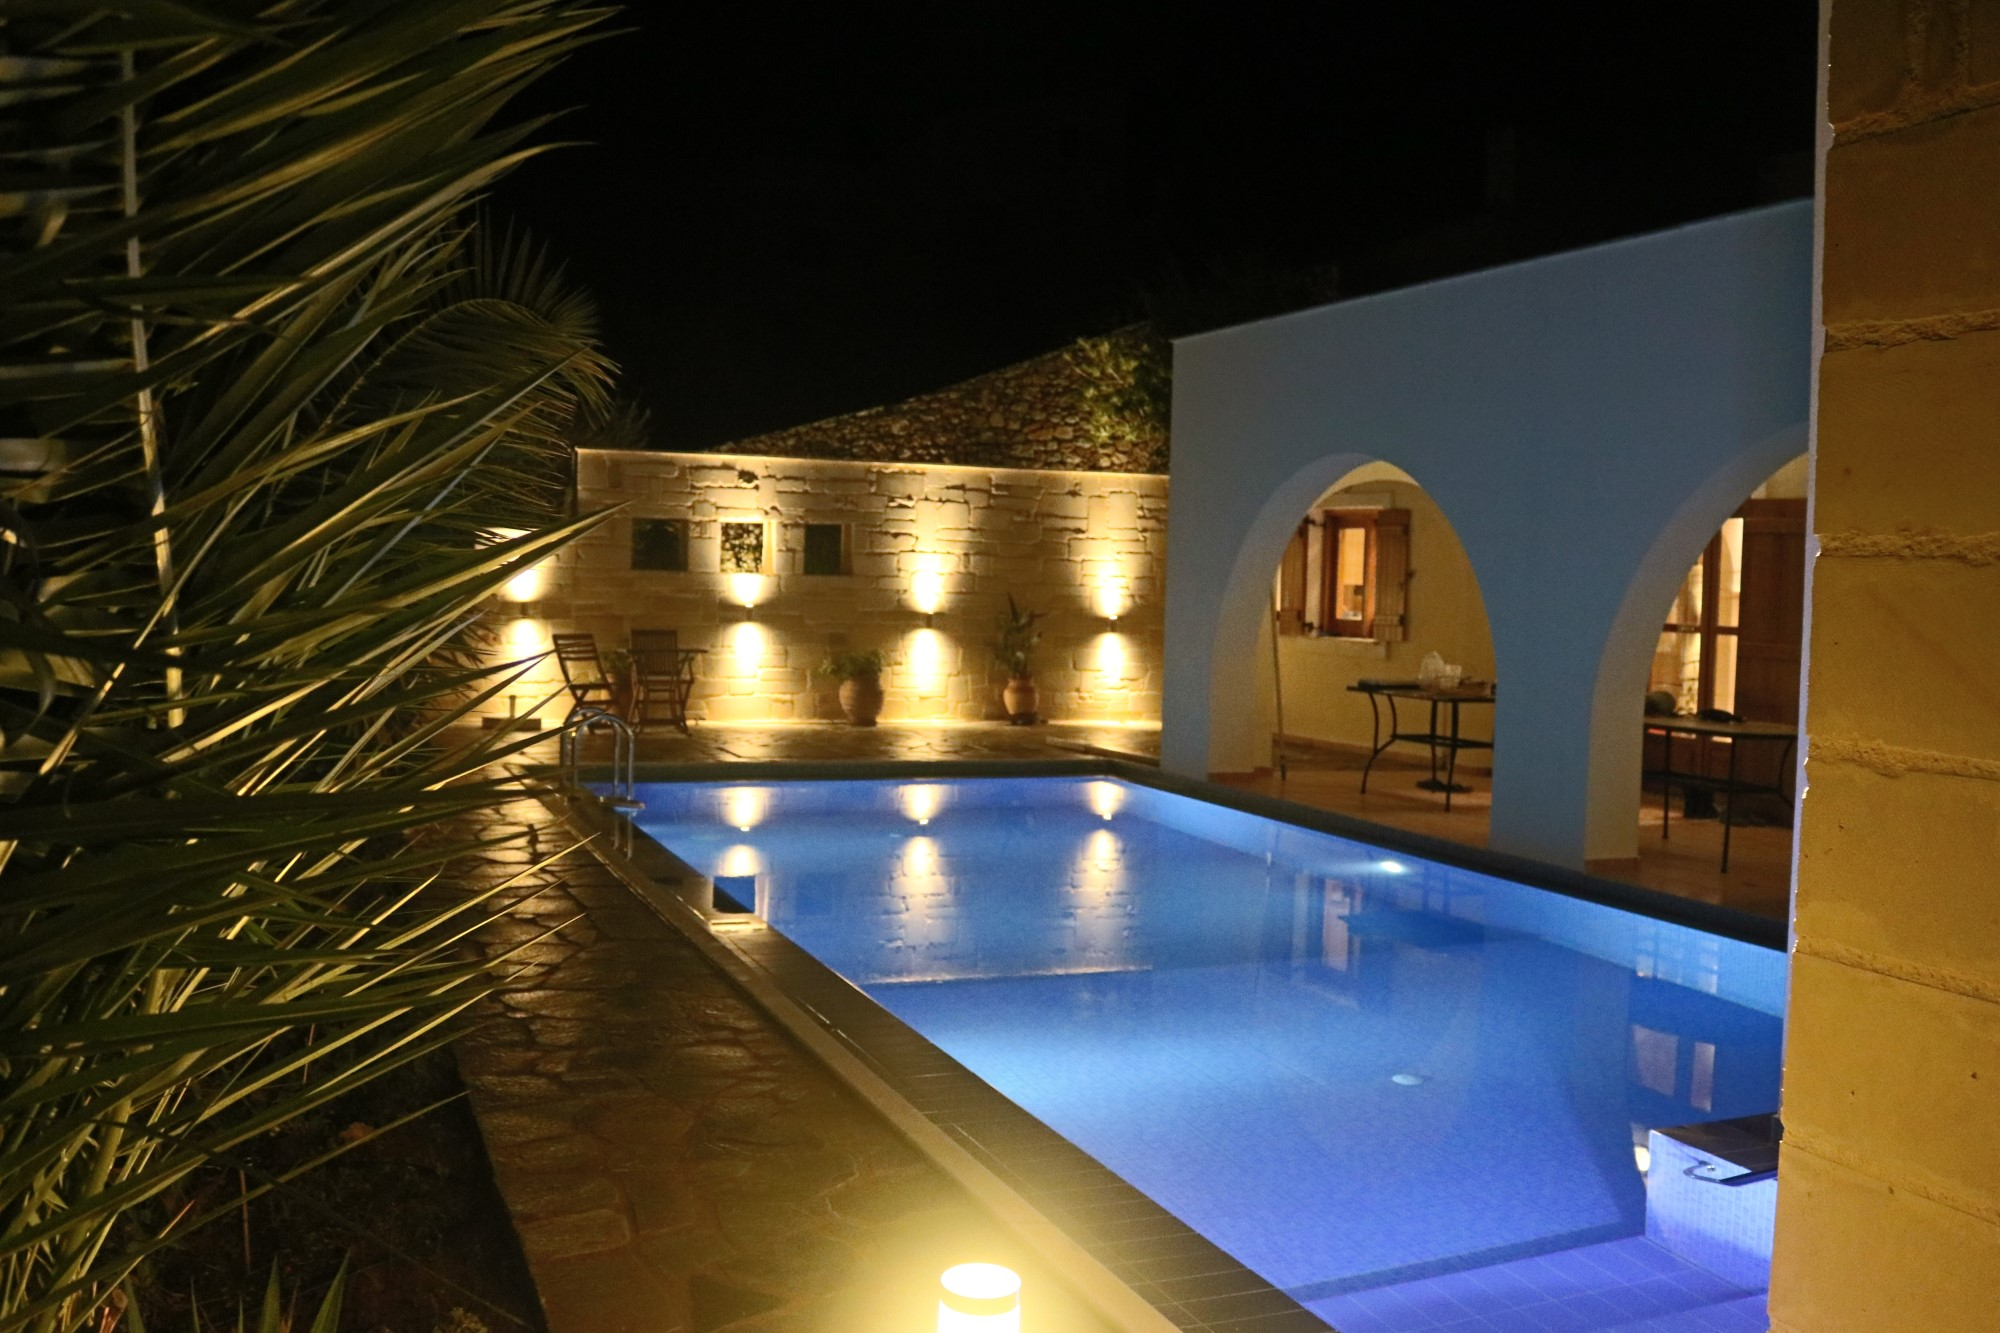 New pool and wall view by night